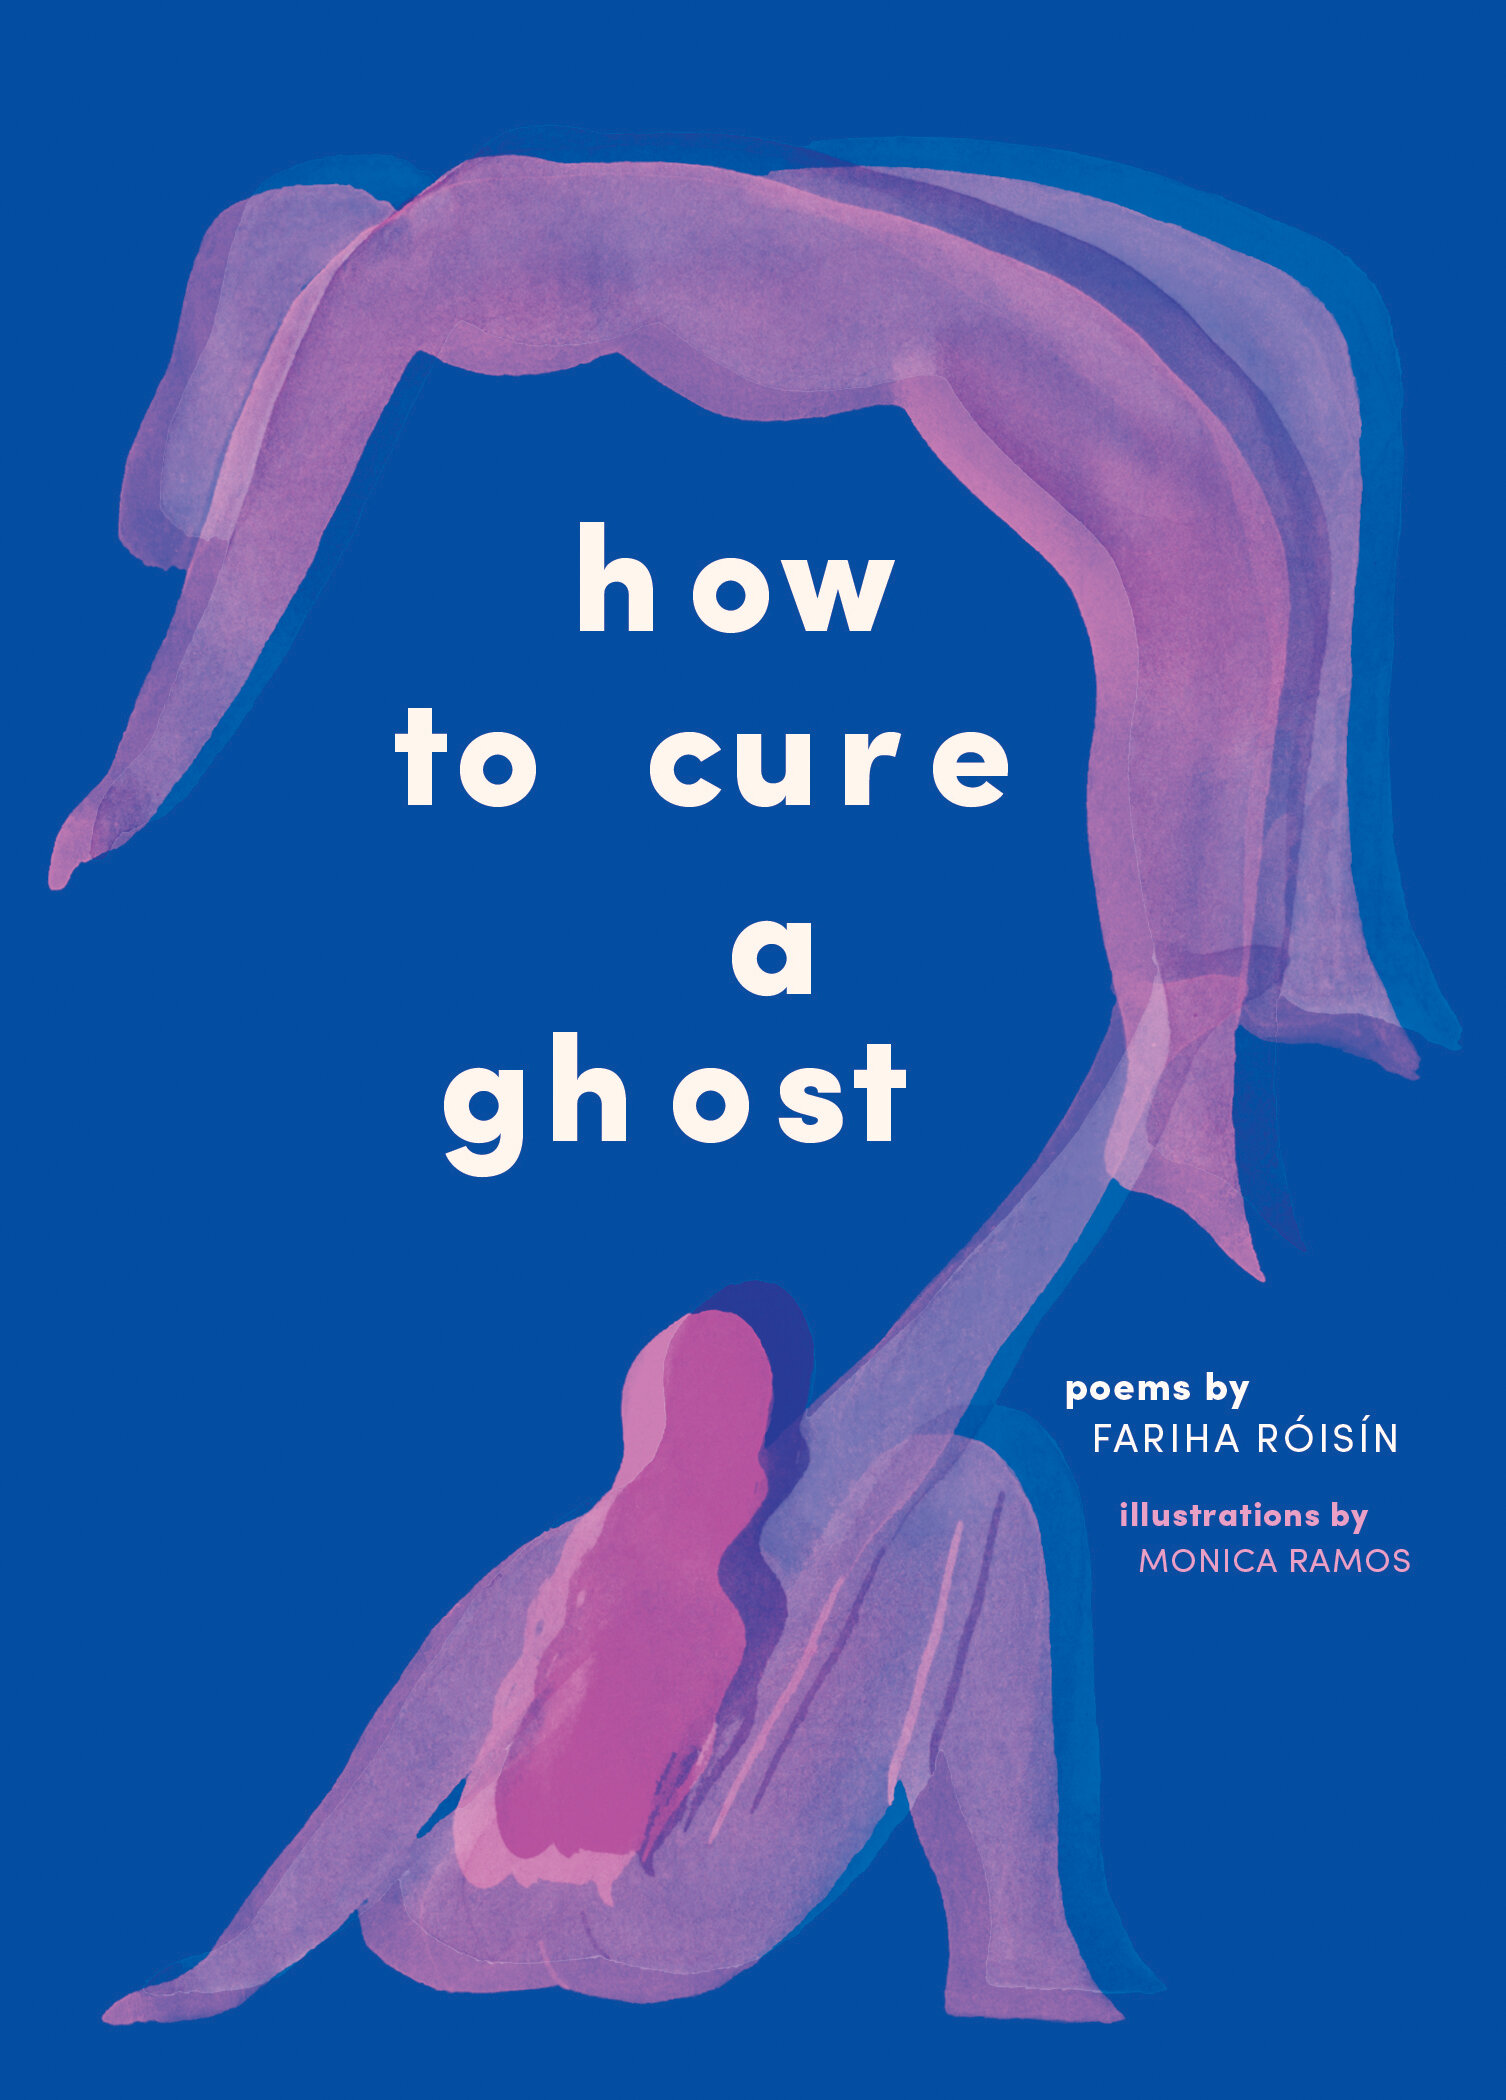 """- How To Cure A Ghost (Abrams, 2019) is Róisín's debut Poetry Collection.It explores shame, ancestral trauma and violence—weaving in Róisin's personal experience of abuse at the hands of her mother, while also being trapped in a body, time and era where she's being forced to confront the many things that have haunted her. The """"ghost"""" she attempts to cure stands for many things: white supremacy, her mother, the patriarchy, Islamophobia, unkindness, her ancestors… Ultimately, it's a book about survival, dedicated to survivors.Buy it here."""